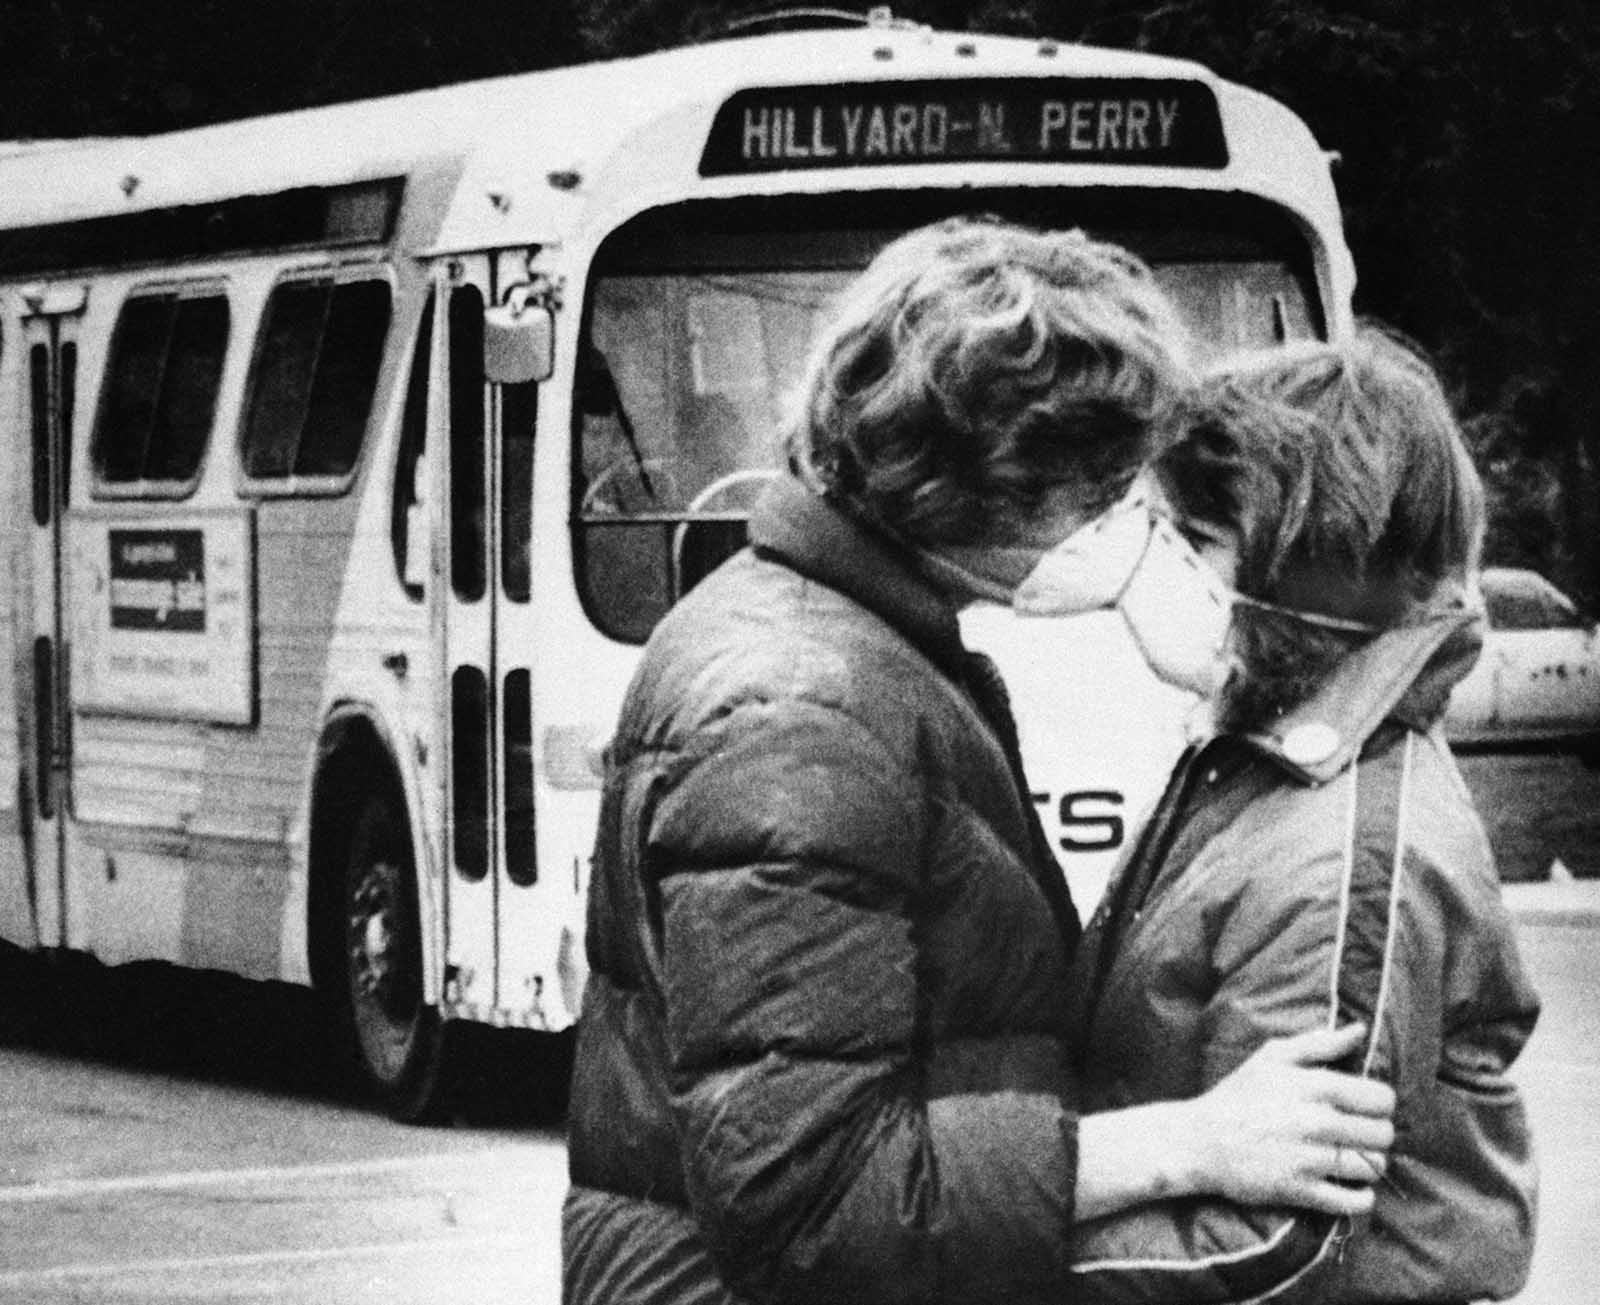 Fifteen-year-old Heidi Havens gives Allen Troup, 16, a kiss as he prepares to board a Spokane City bus, on May 27, 1980. Spokane residents had to wear face masks while outside for days after the eruption because of possible health threats from volcanic ash sprayed over the area by Mount St. Helens on May 18.